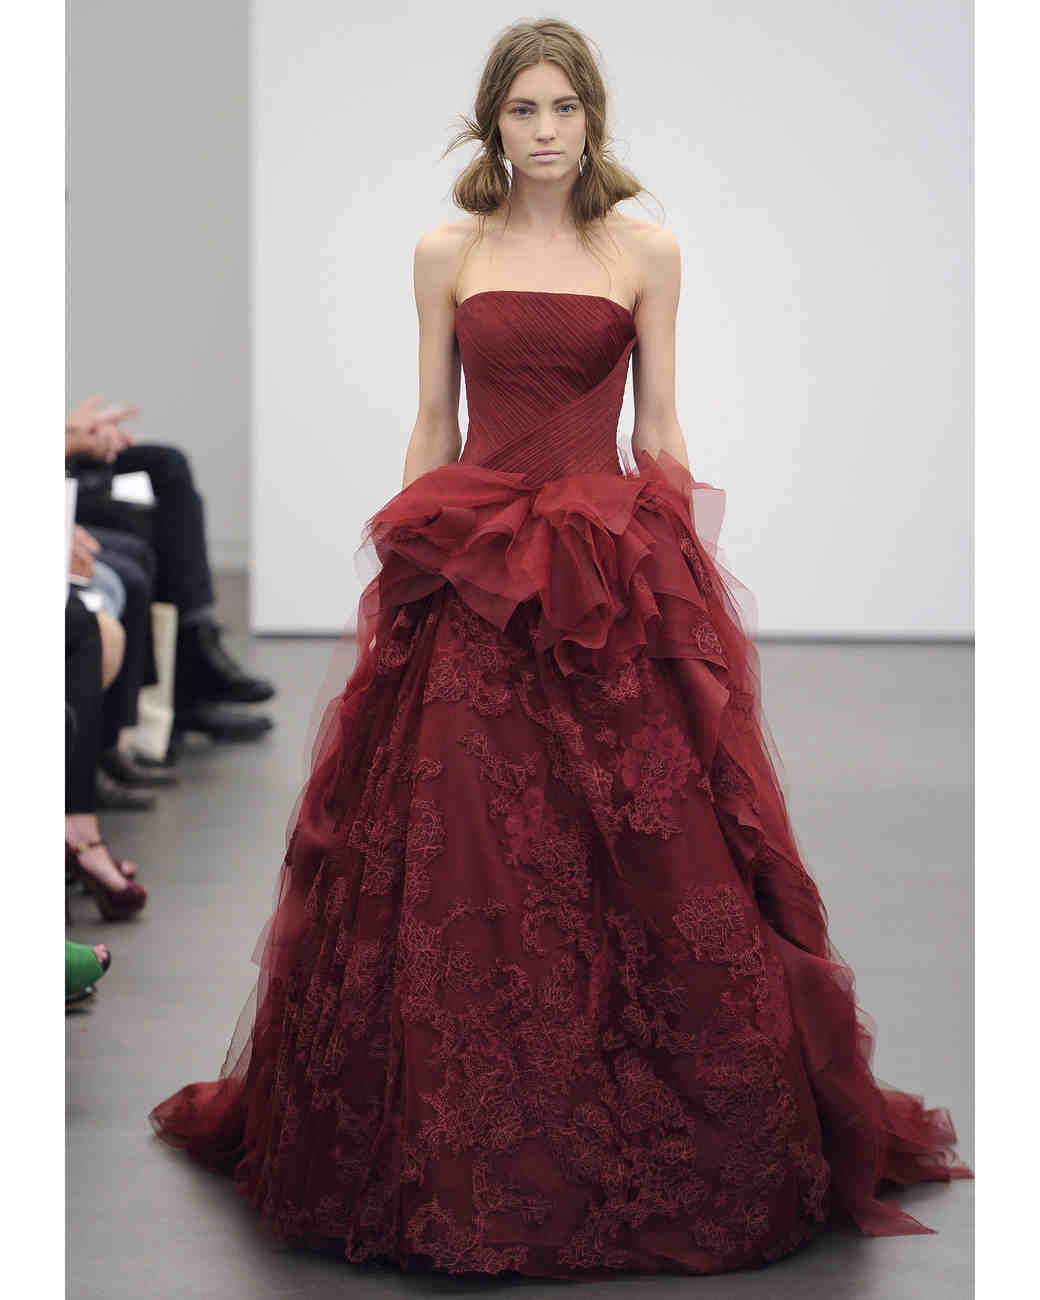 Wedding Gowns With Red: Red Wedding Dresses, Spring 2013 Bridal Fashion Week